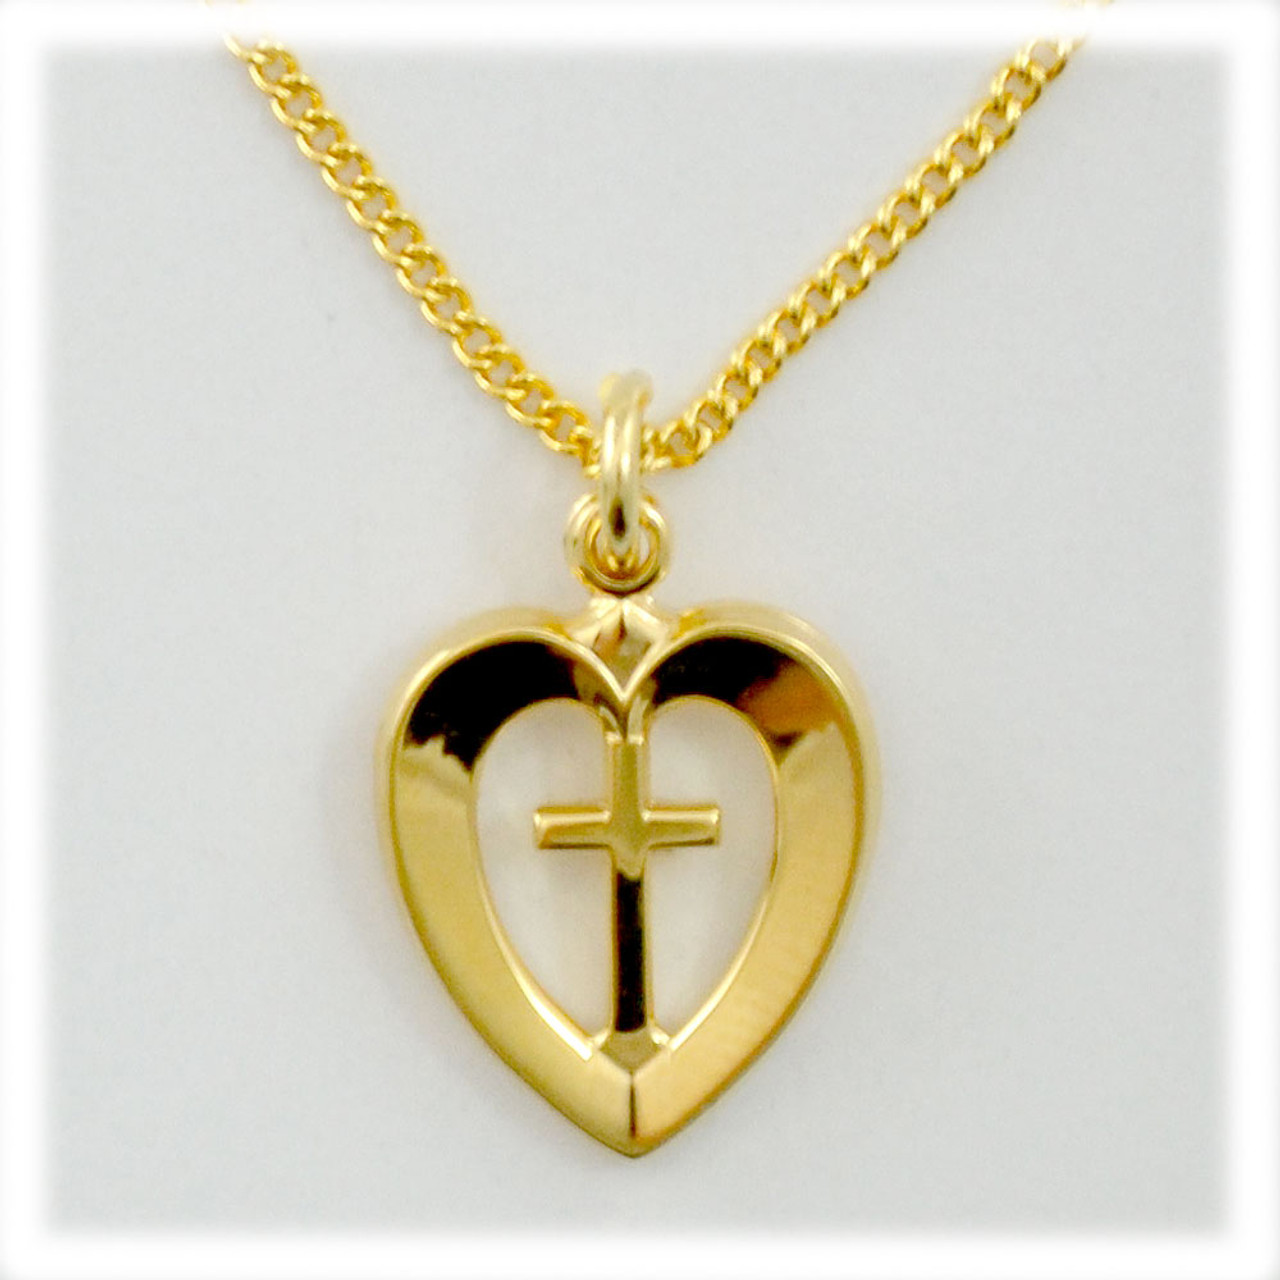 18kt Gold-Plated Cross in Heart Necklace